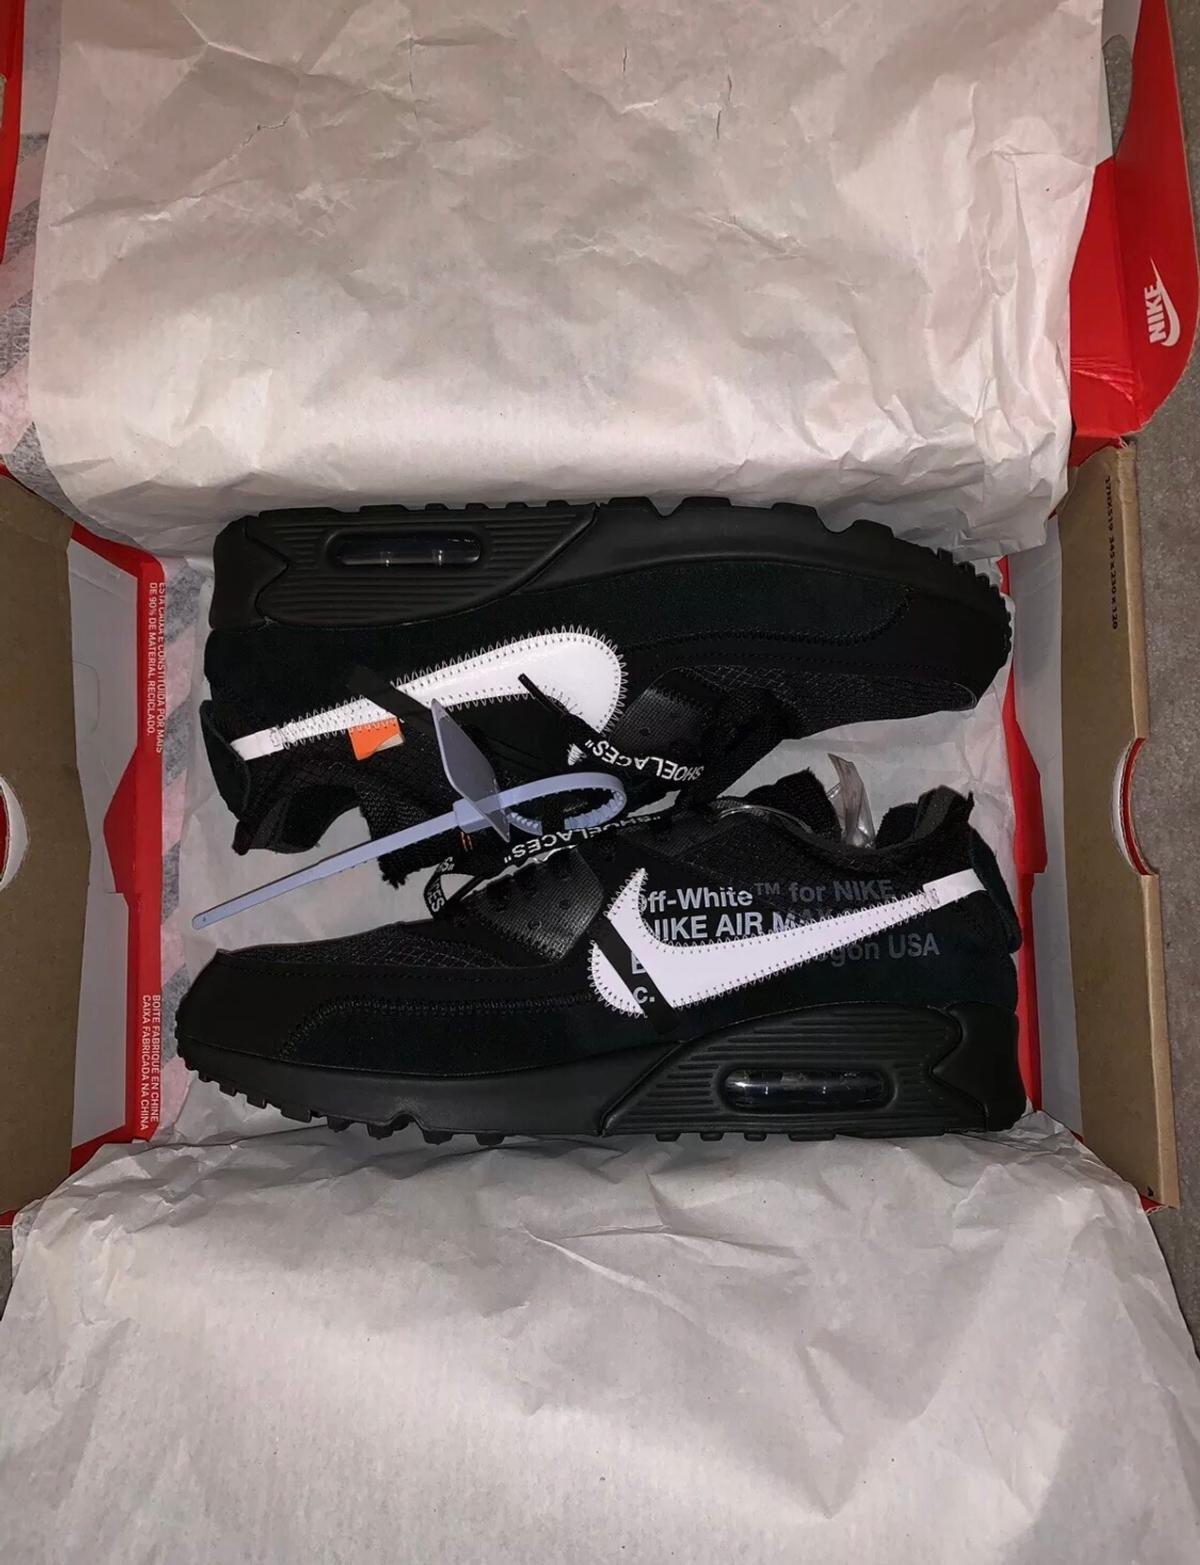 8f0b213a Off white air max 90 in 131 33 Hästhagen for SEK 4,995.00 for sale ...